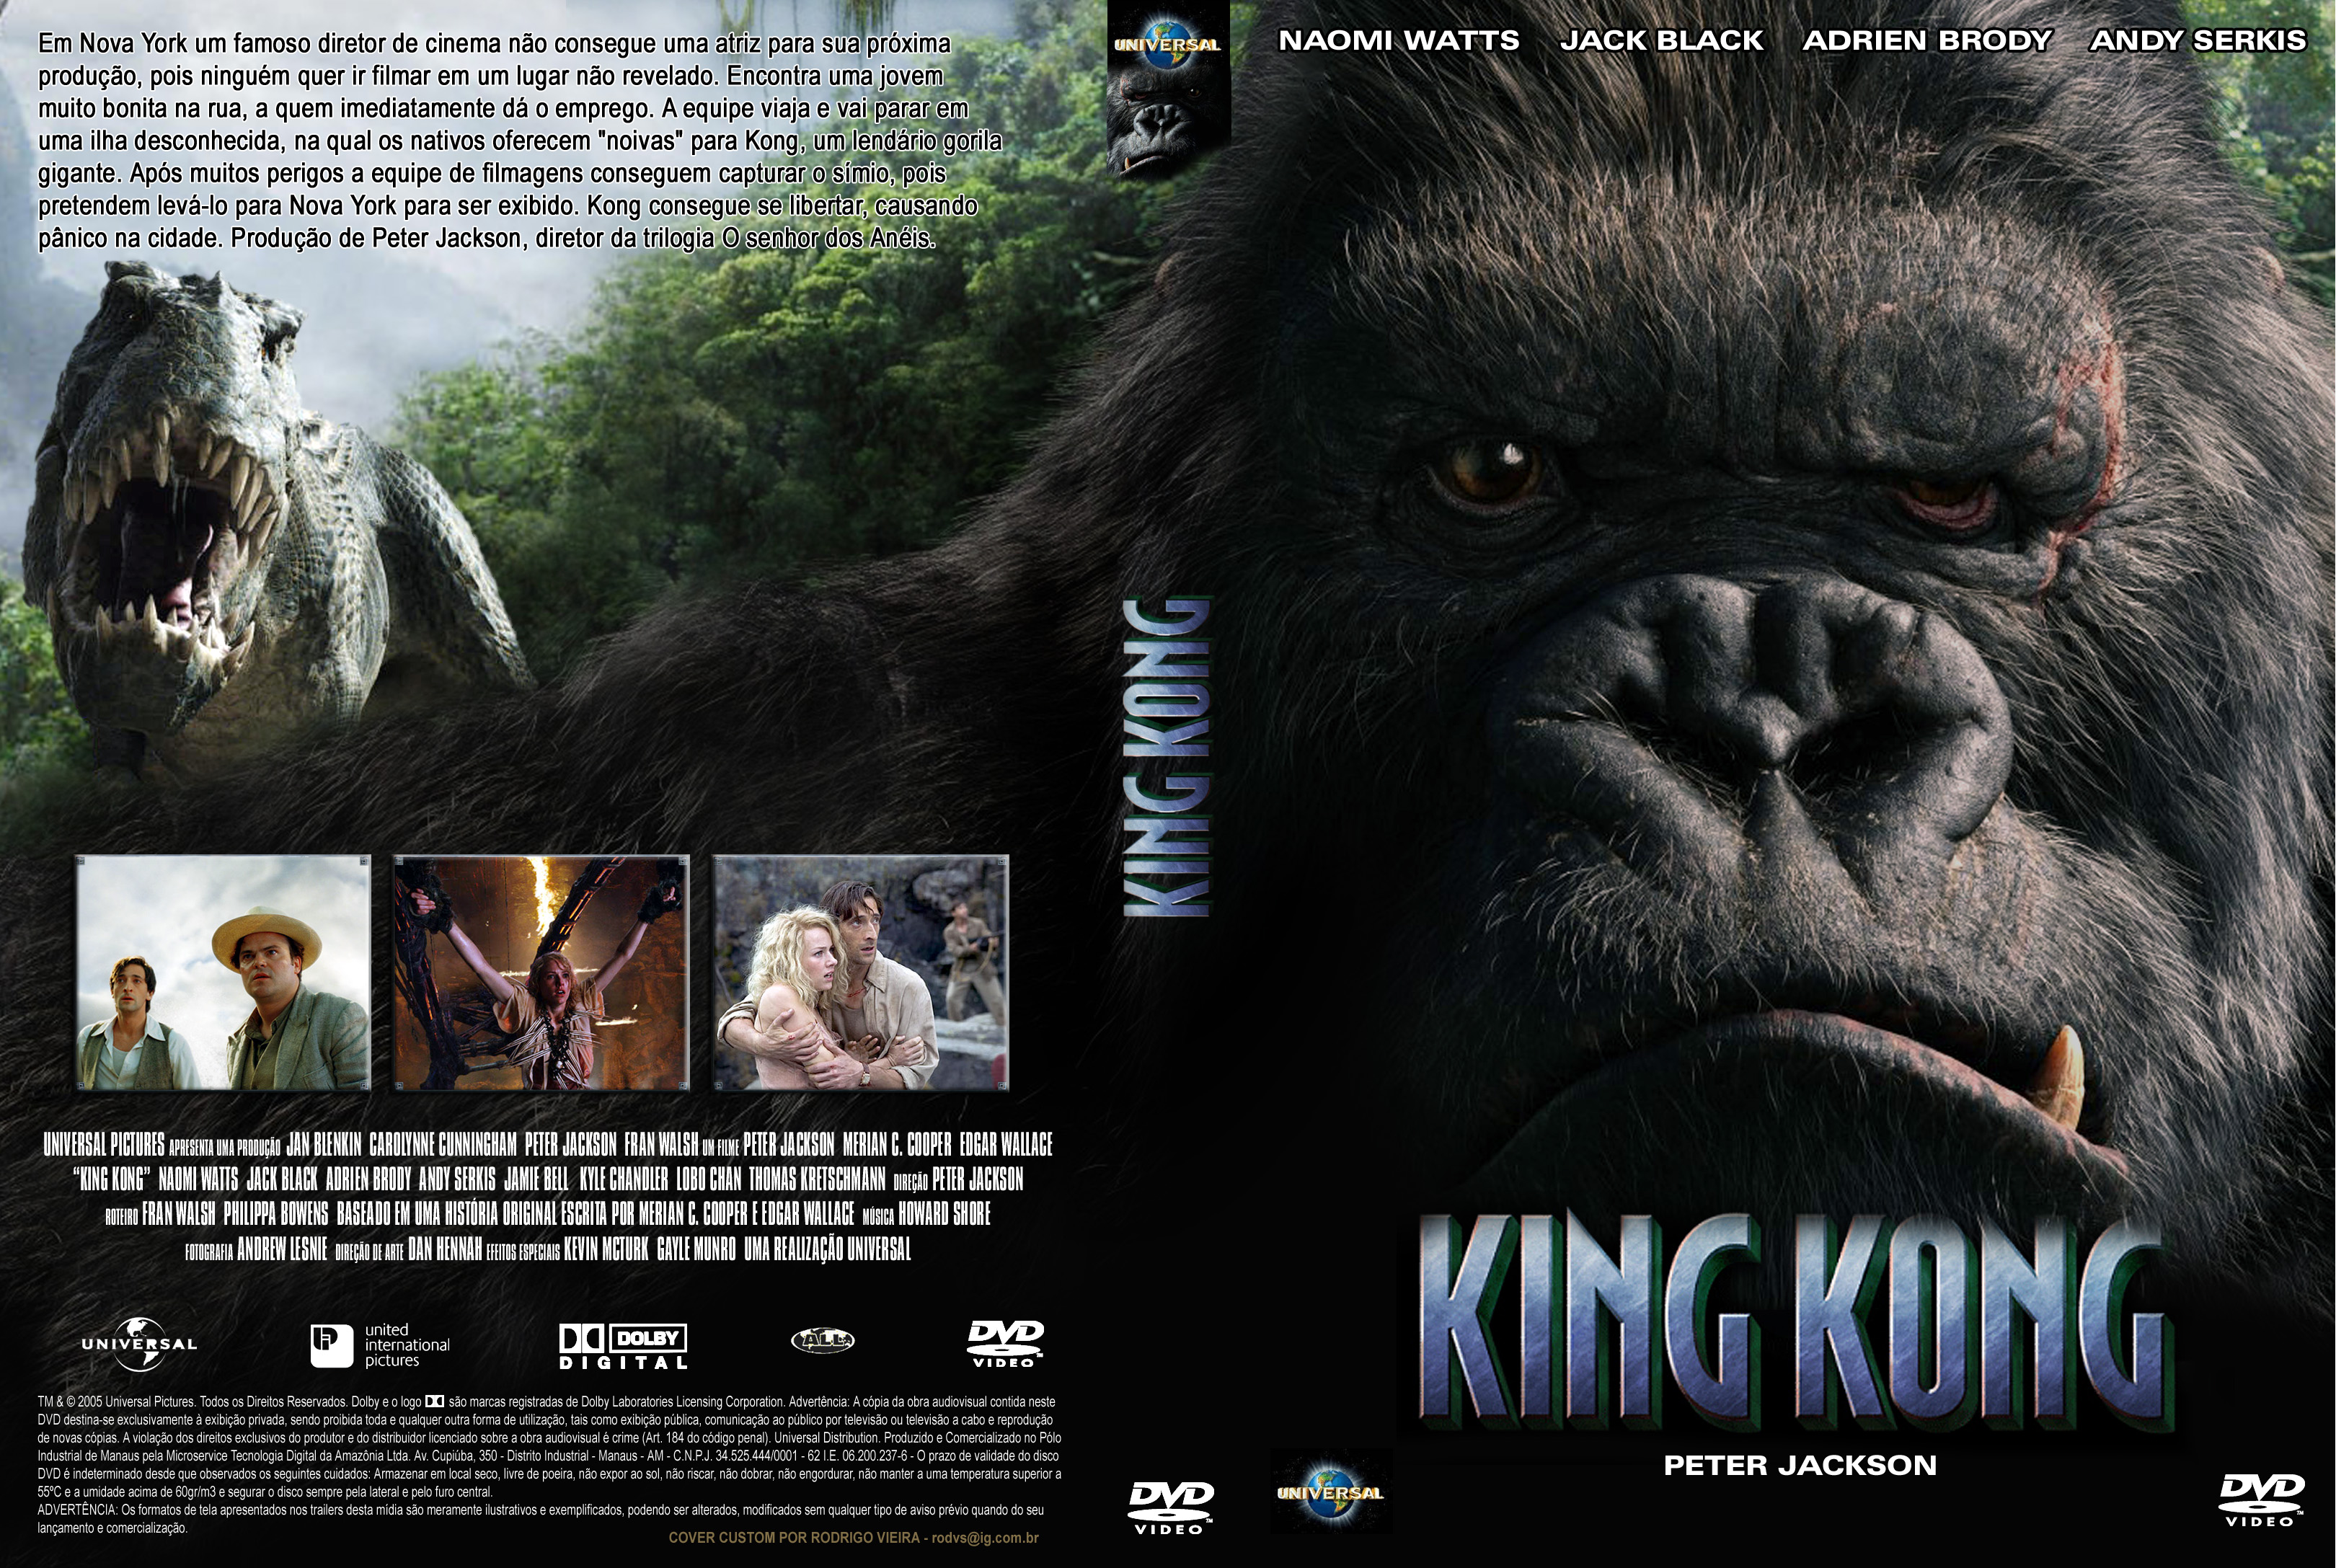 King Kong by Peter Jackson Naomi Watts Jack Black